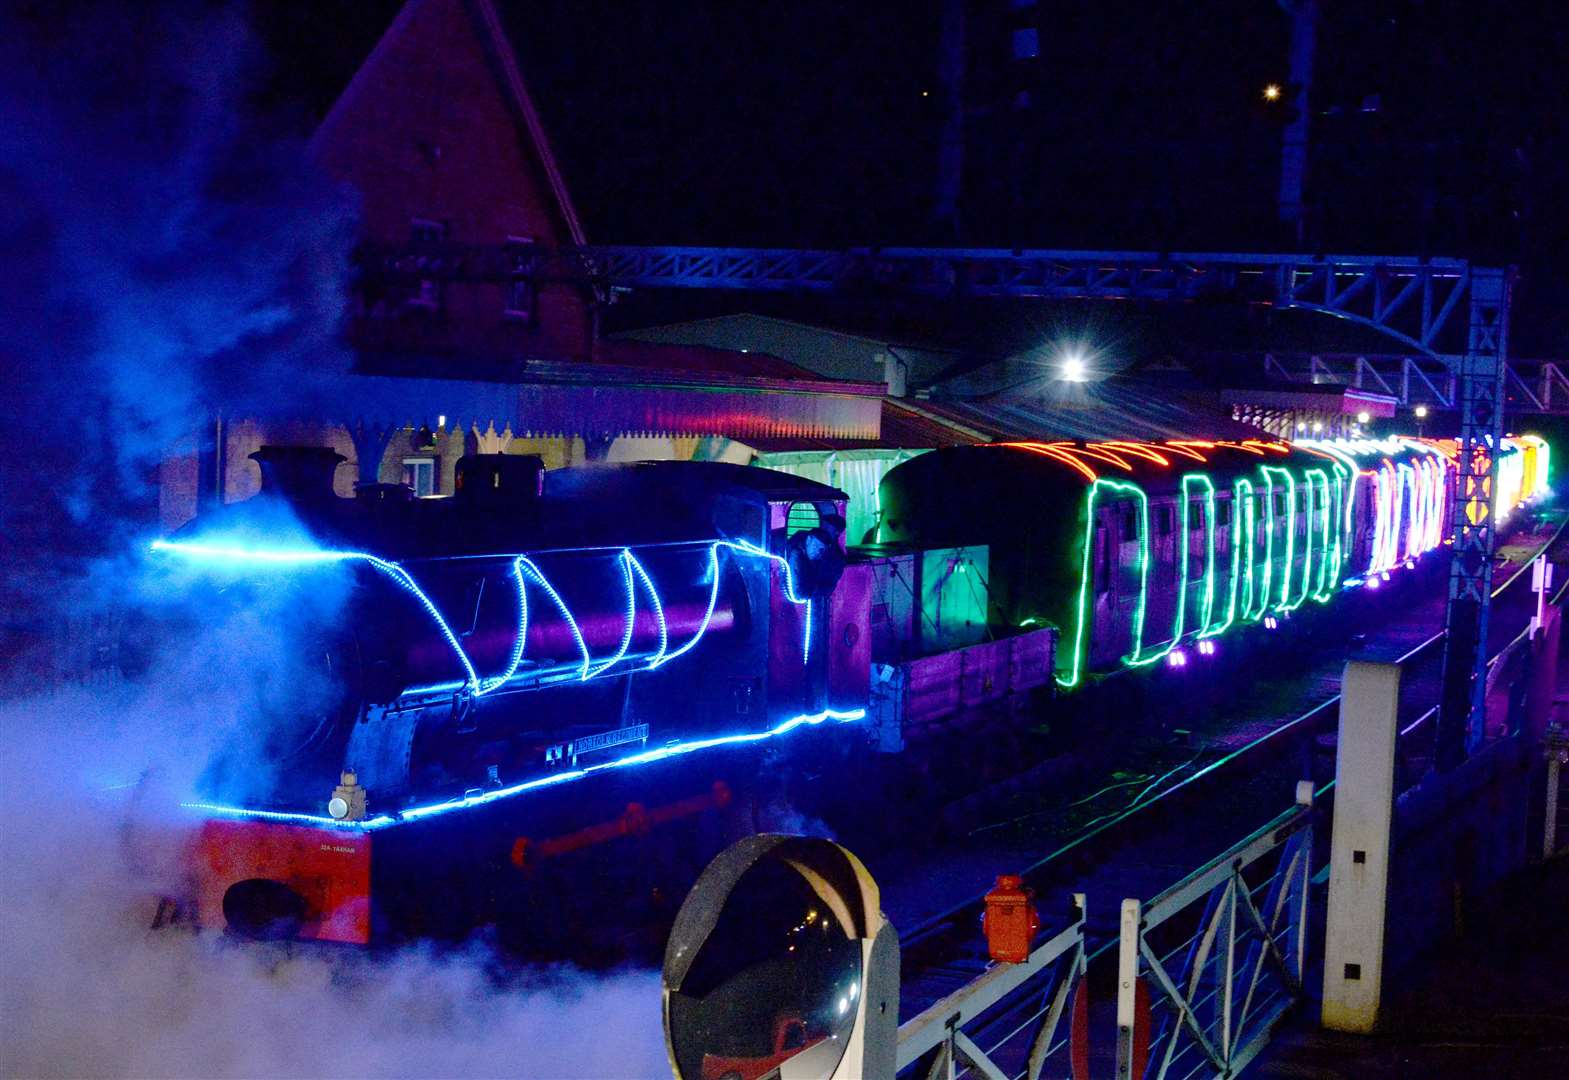 Winter sparkling train is truly spectacular